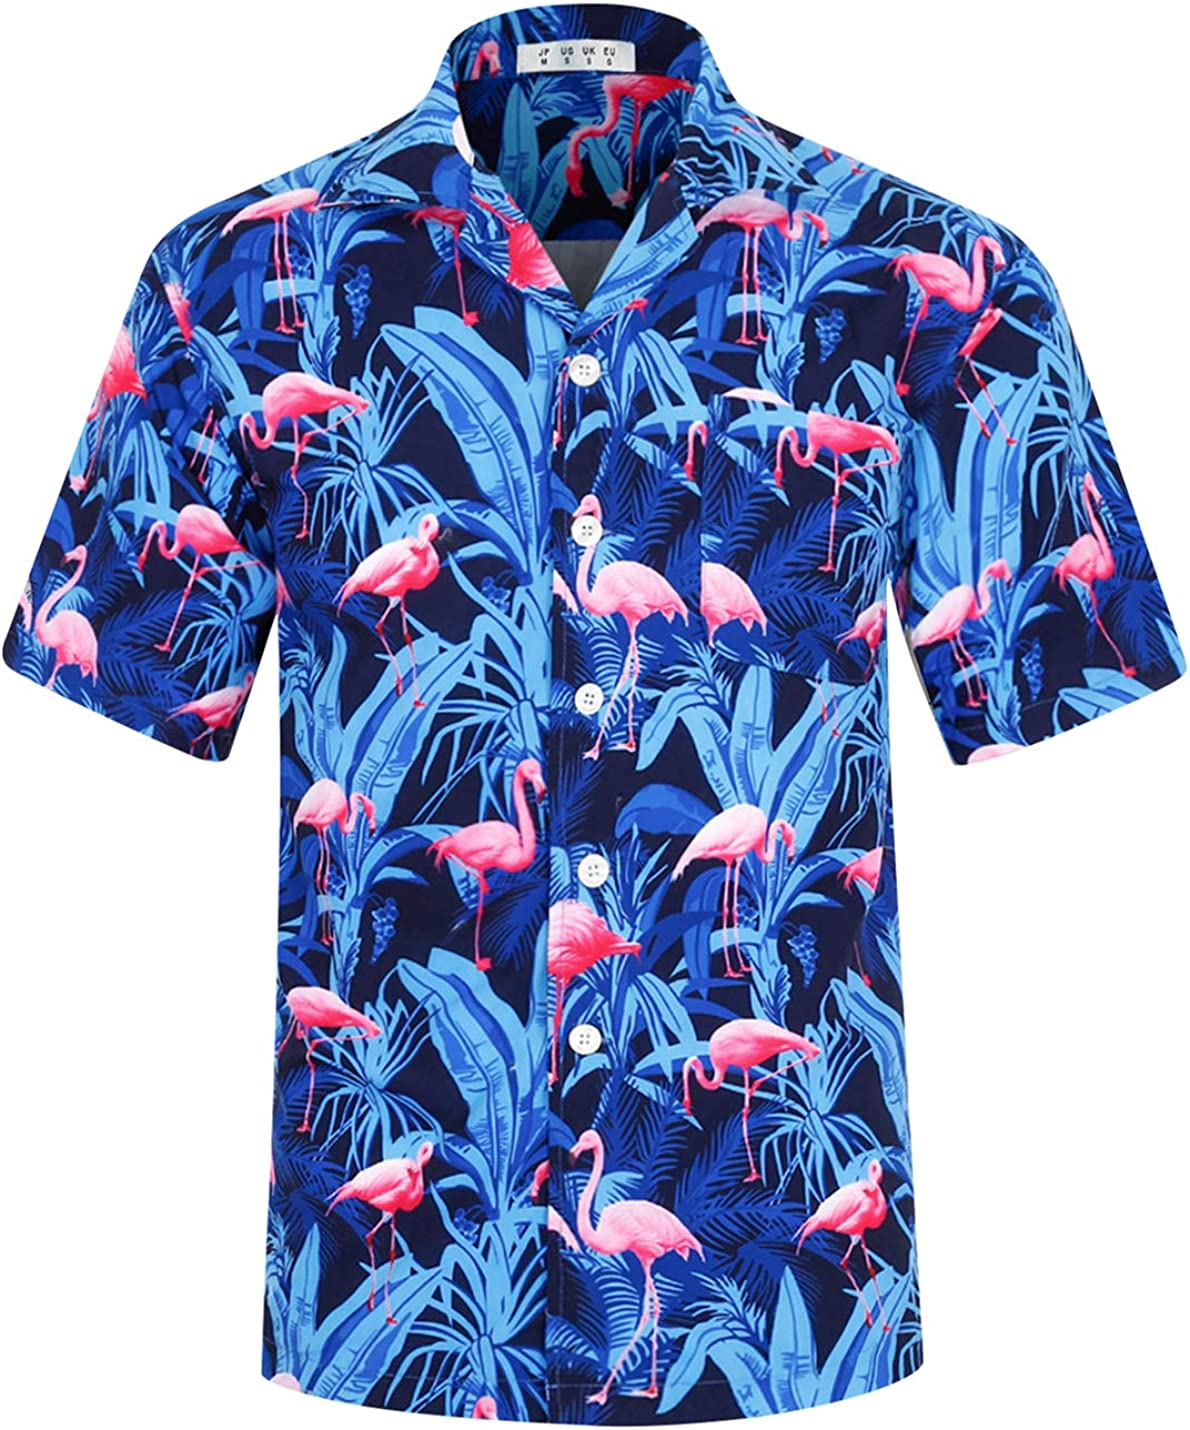 APTRO Men's Casual Hawaiian Shirt 4 Way Stretch Relax Fit Short Sleeve Tropical Shirts